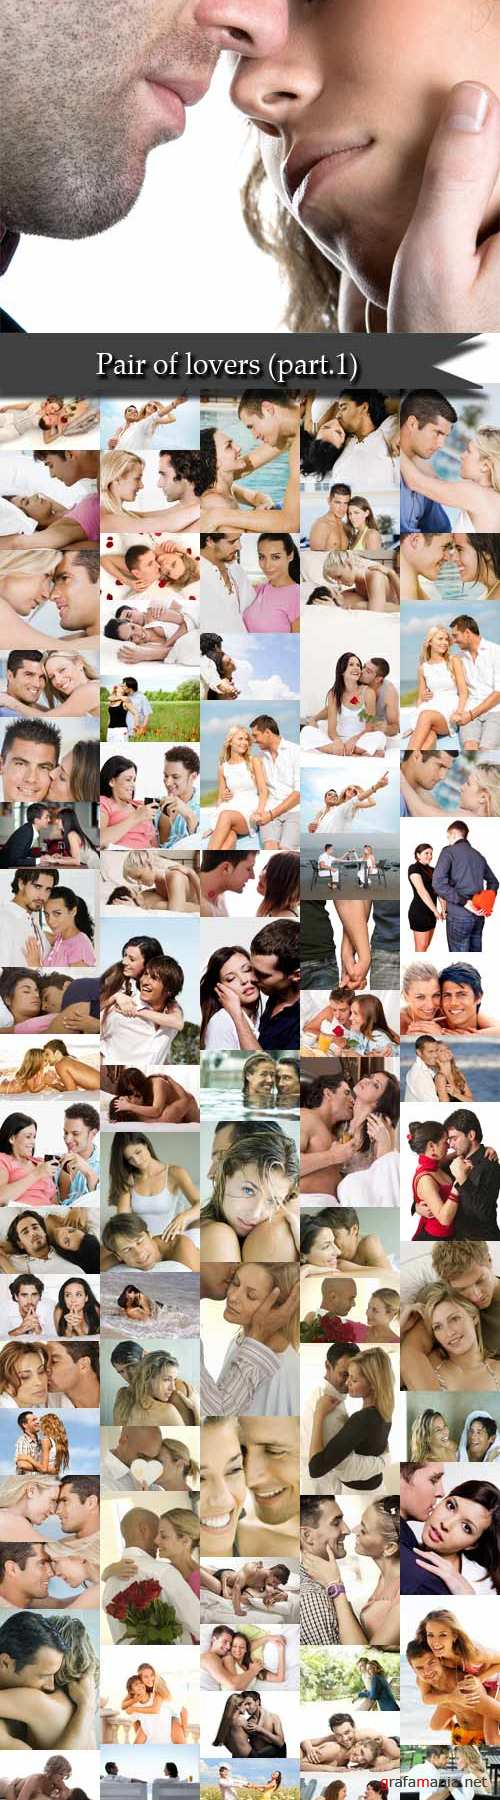 Stock photo of a pair of lovers - 1